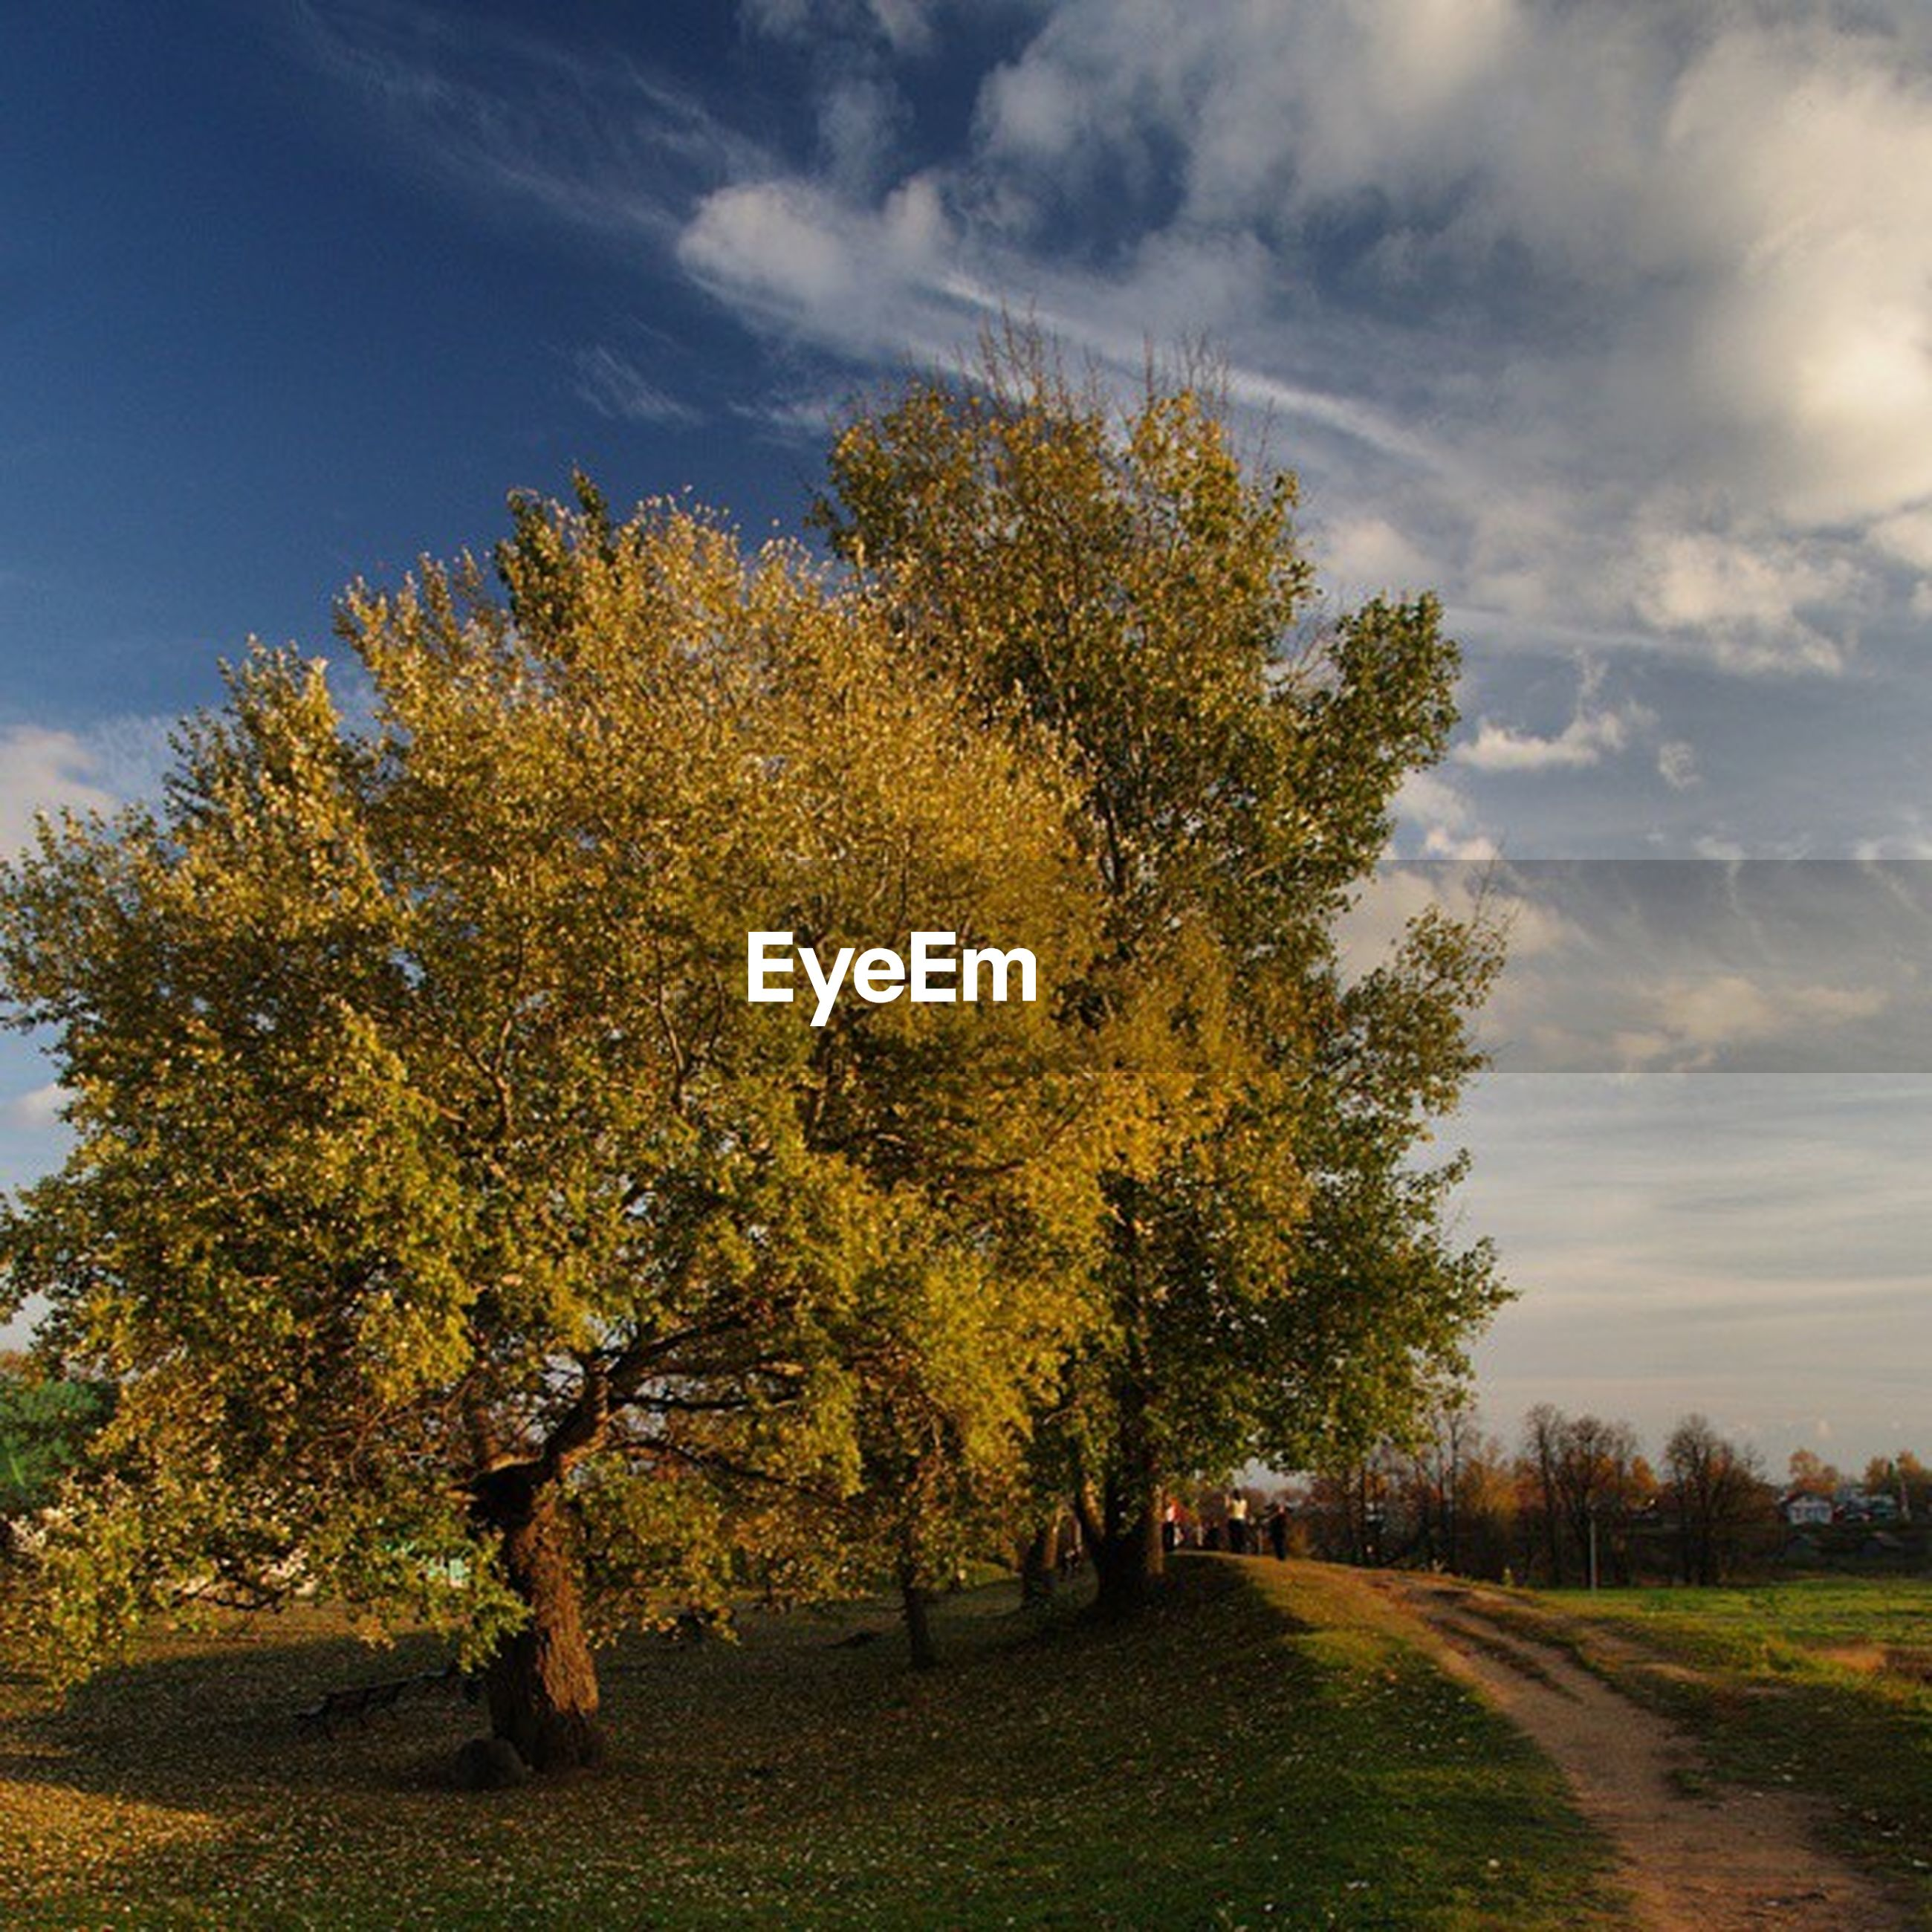 tree, sky, the way forward, cloud - sky, tranquility, road, tranquil scene, nature, growth, beauty in nature, cloud, scenics, field, landscape, diminishing perspective, cloudy, autumn, sunlight, outdoors, day